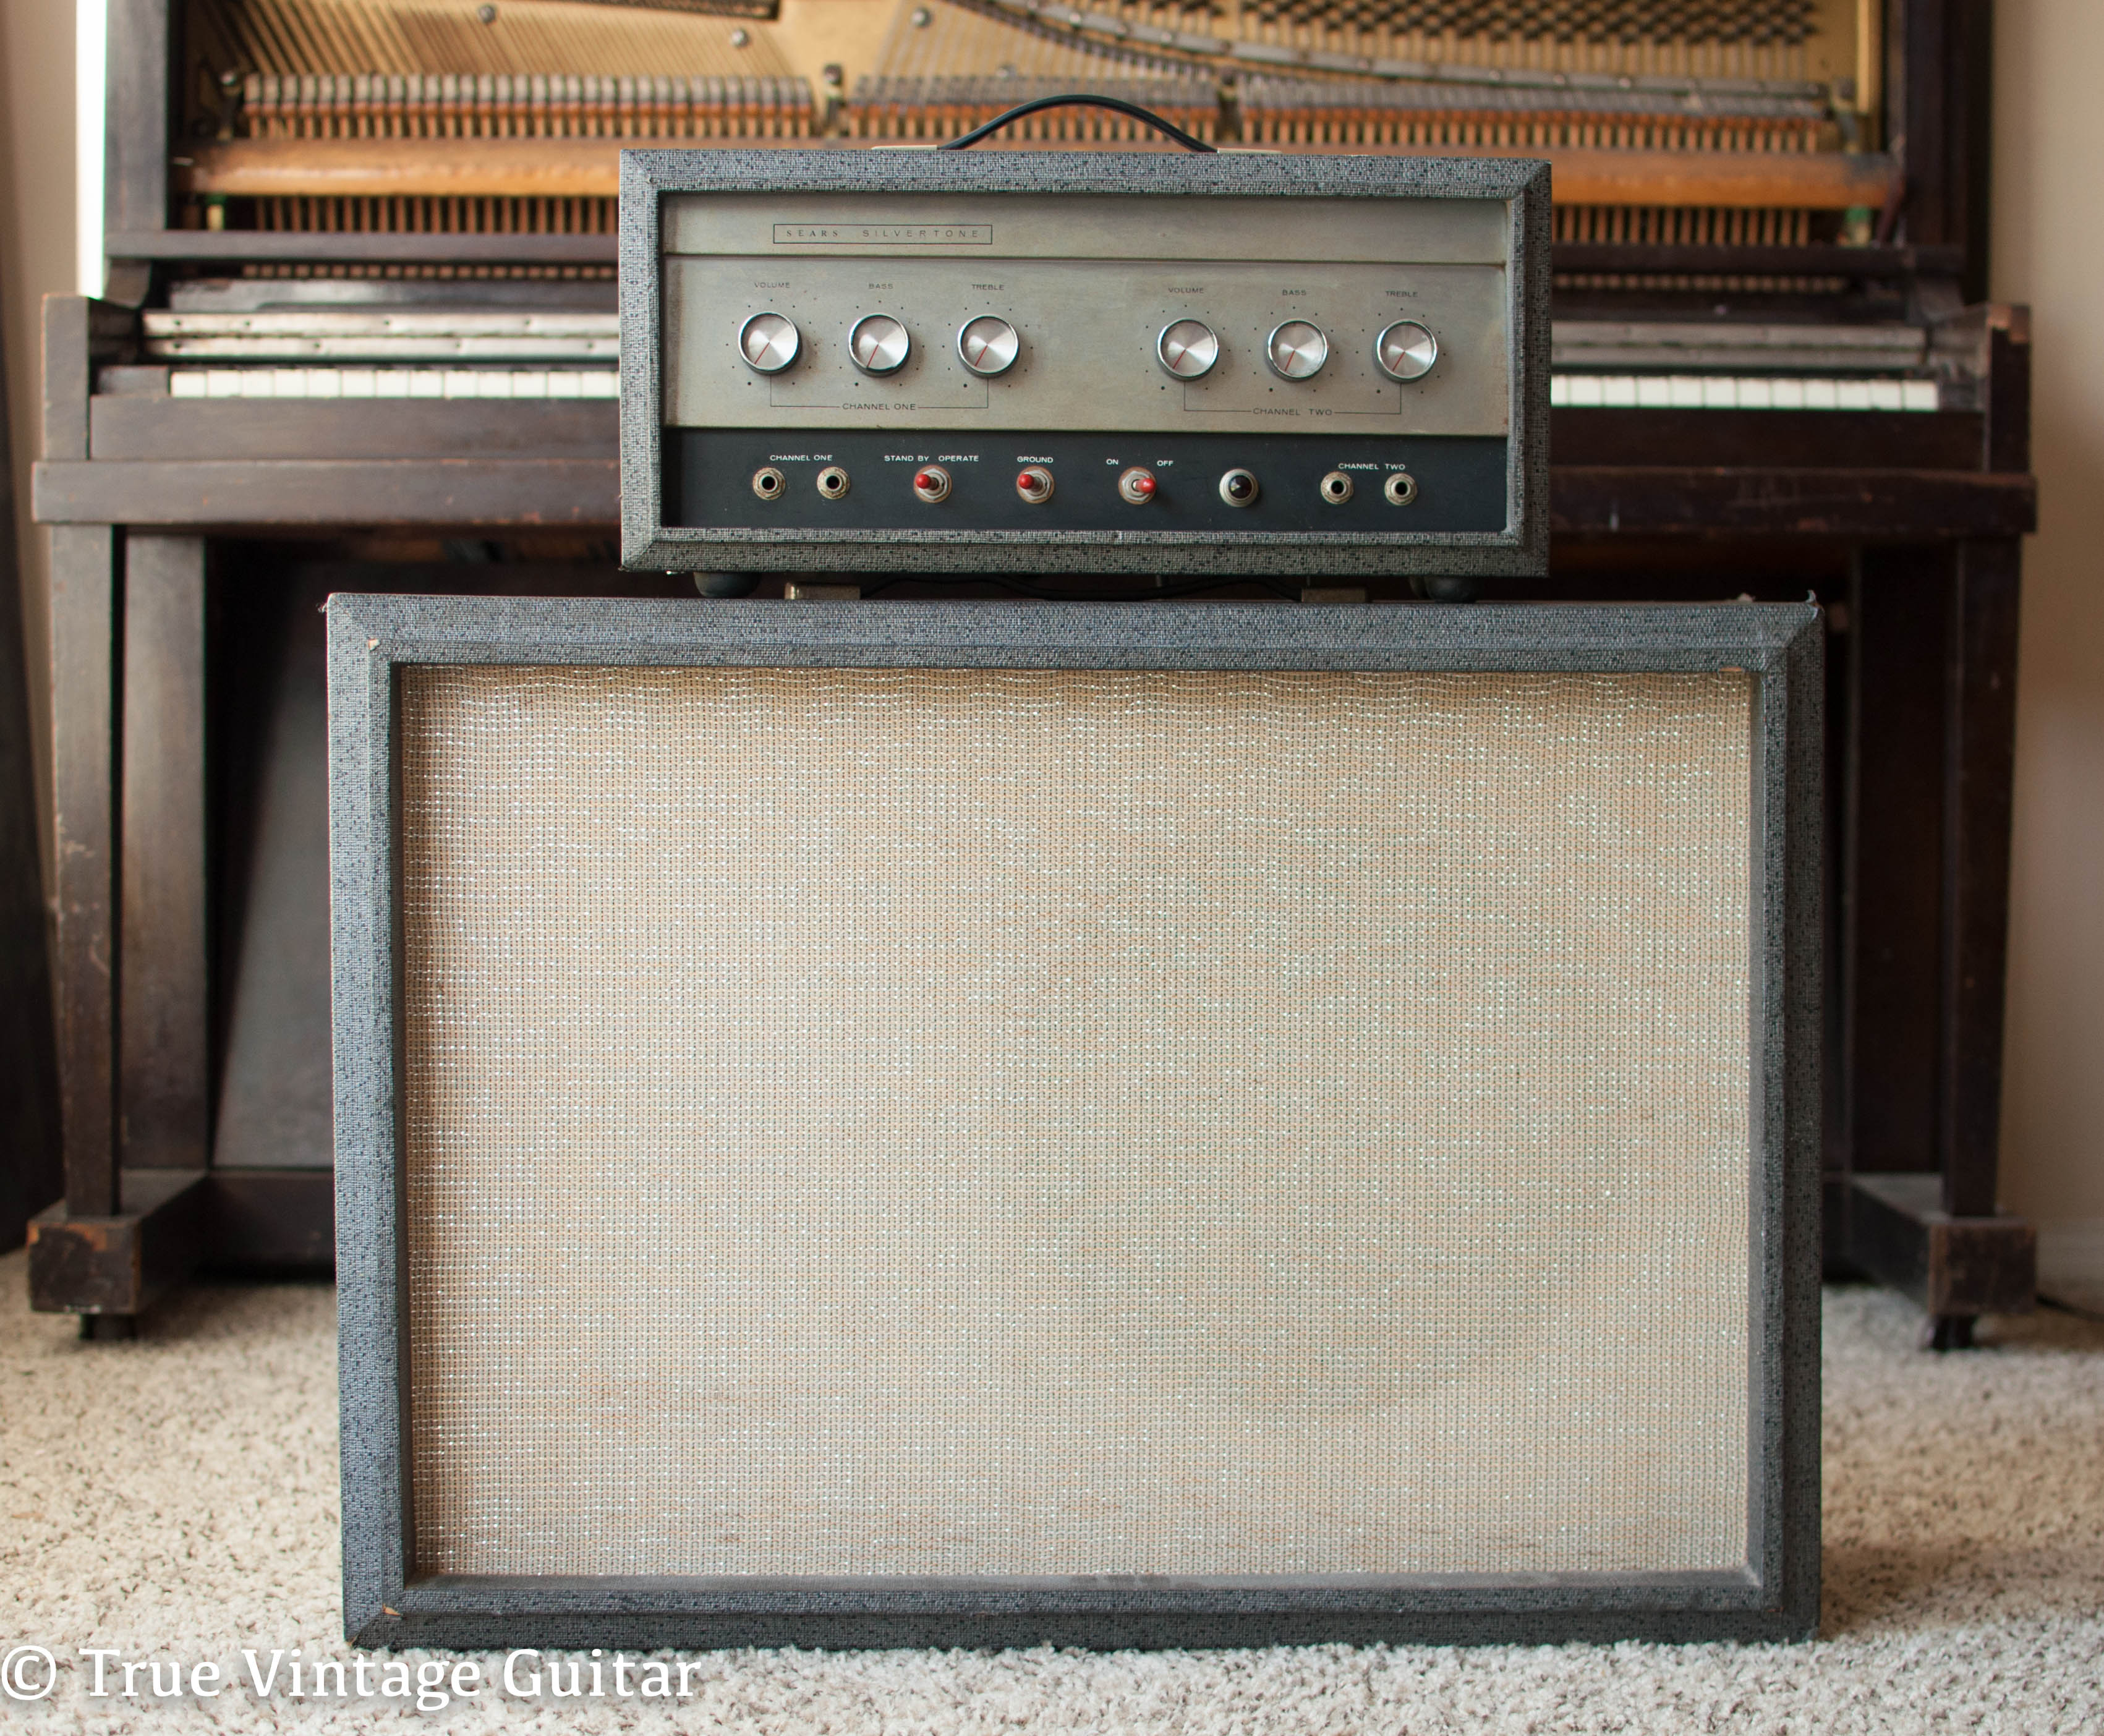 Silvertone 1483 1966 Amp For Sale True Vintage Guitar